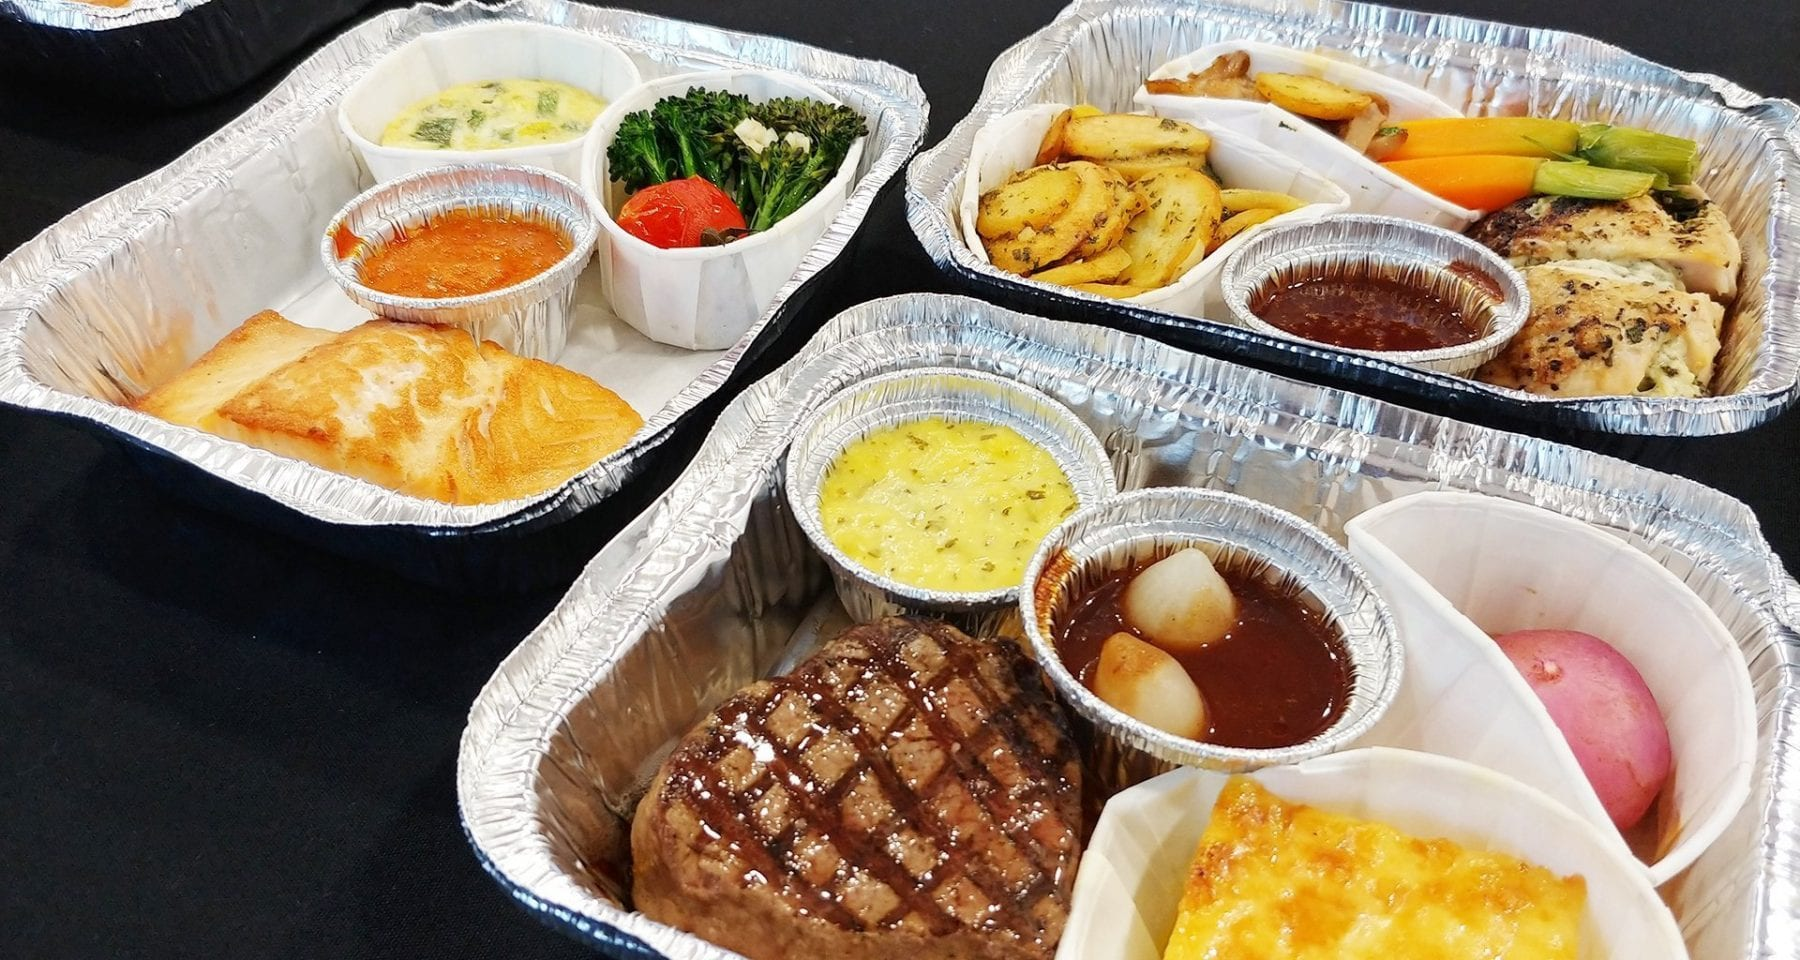 Delta One inflight meals galley